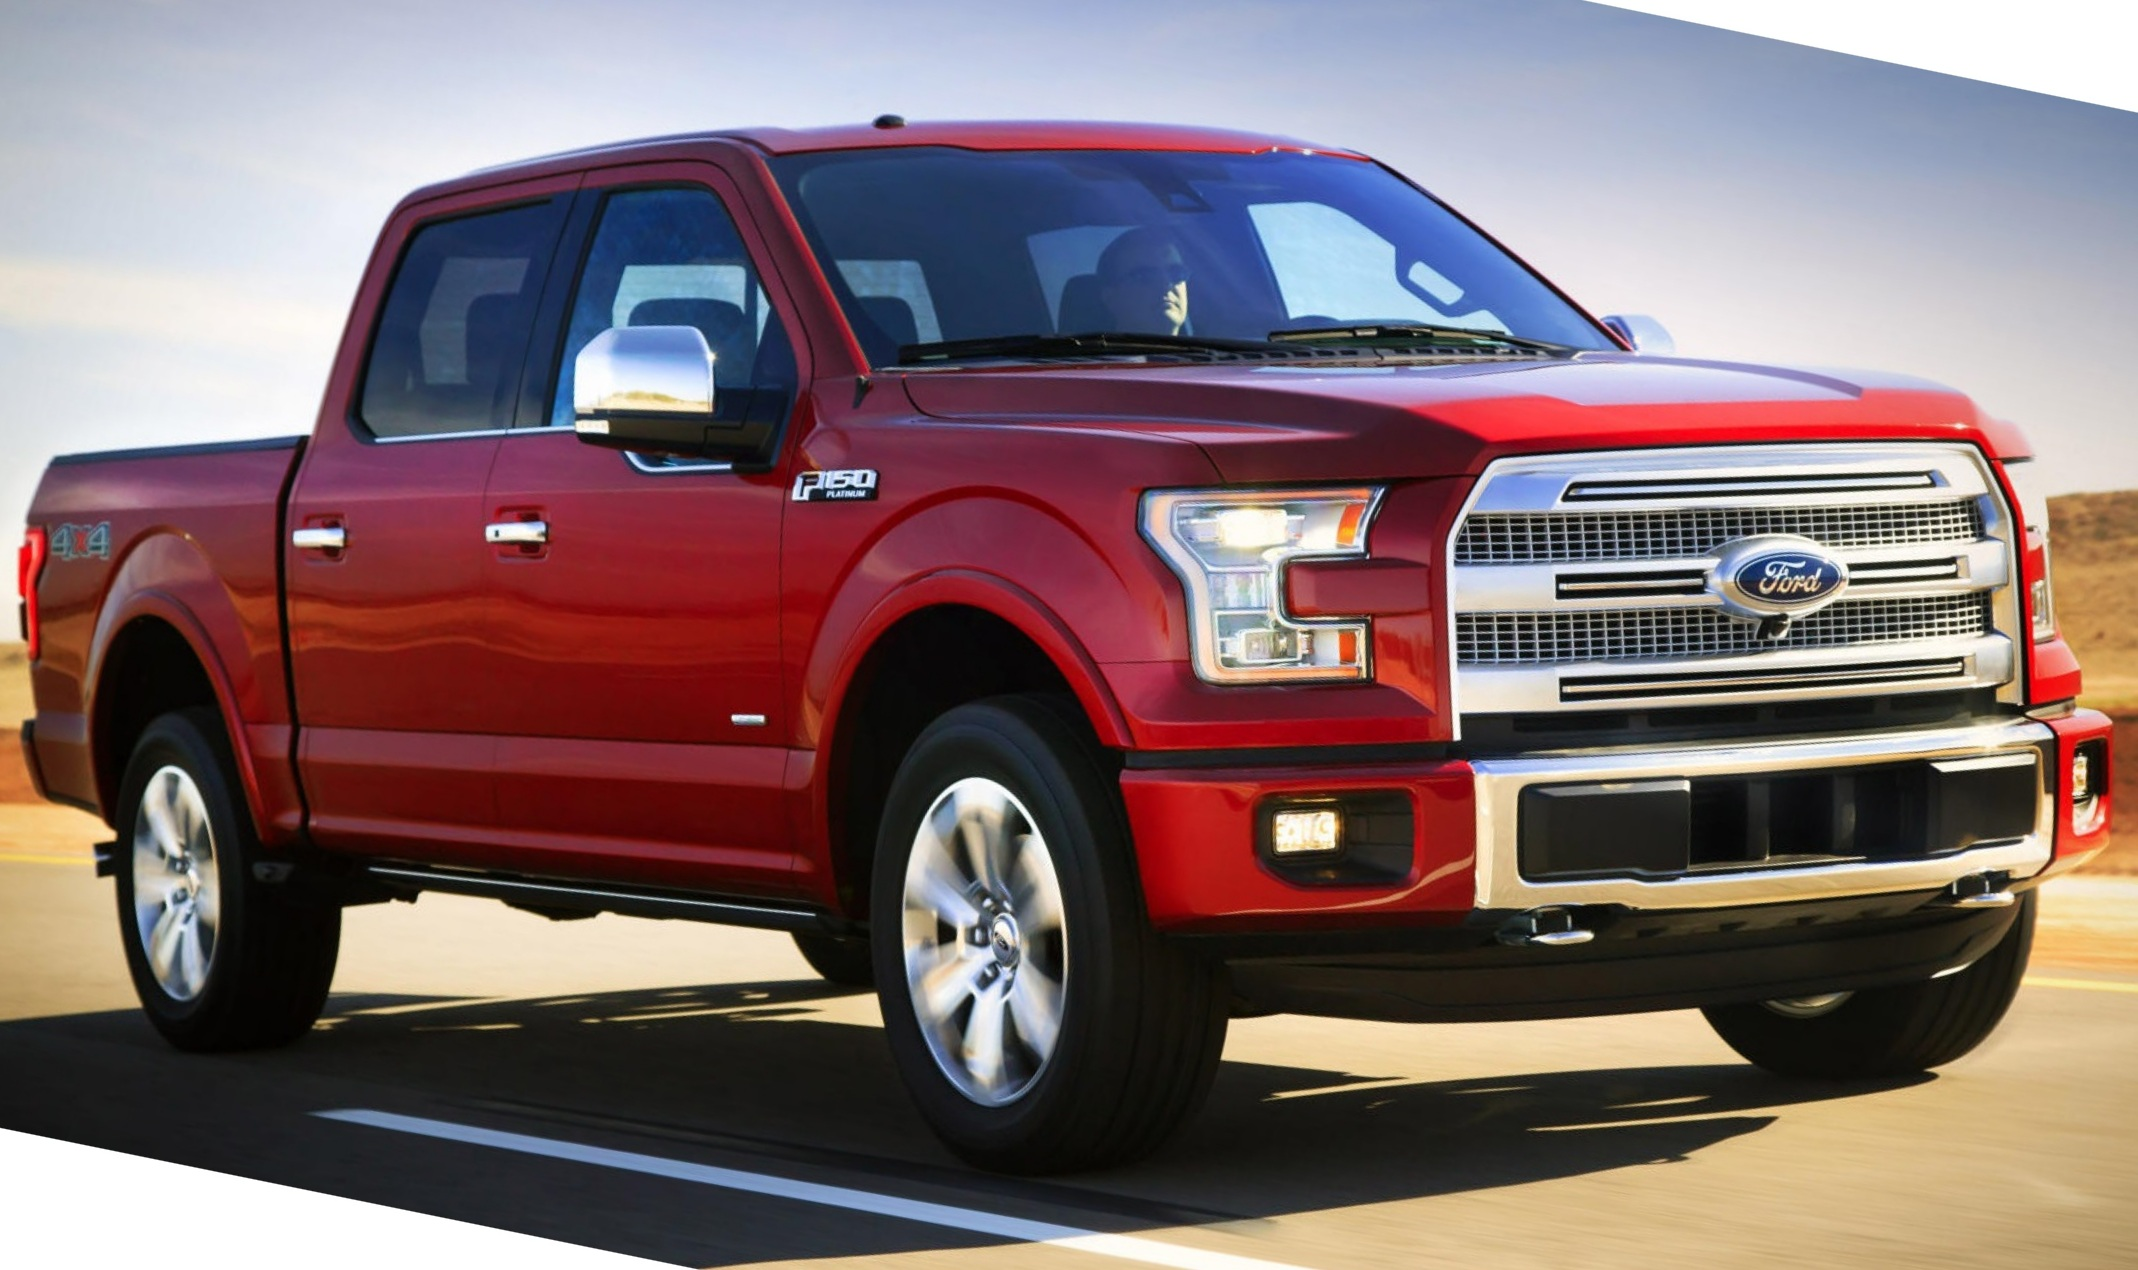 2015 Ford F 150 News 2015 ford f 150 Wallpapers 10 HD 2138x1270